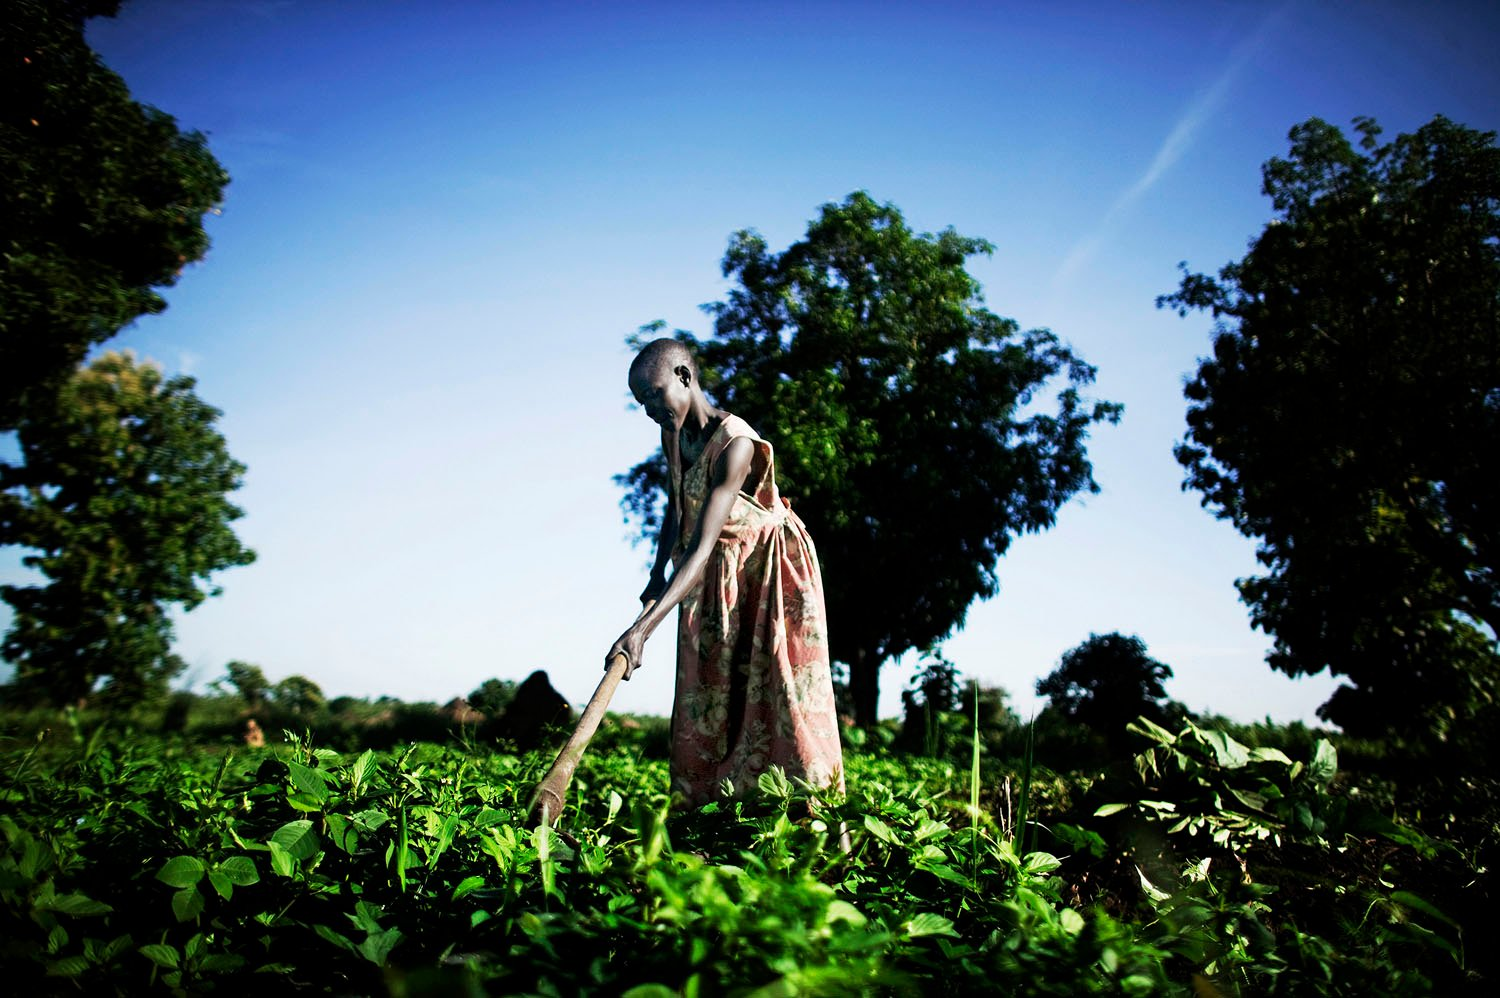 A woman tends to her garden in the fertile lands along the southern border with Uganda. The tribes in the deep south are agriculturalists and differ significantly in collective personality from the semi-nomadic pastoralists of central southern Sudan. Some in the deep south believe that their region should receive their own form of independence. There is great tension between the deep southern, agricultural tribes and the Dinkas, the region's largest and most powerful group. Dinka's moved to the deep south in large numbers after they liberated those areas during the war. They expropriated land belonging to the native tribes, an issue that generated tremendous resentment.